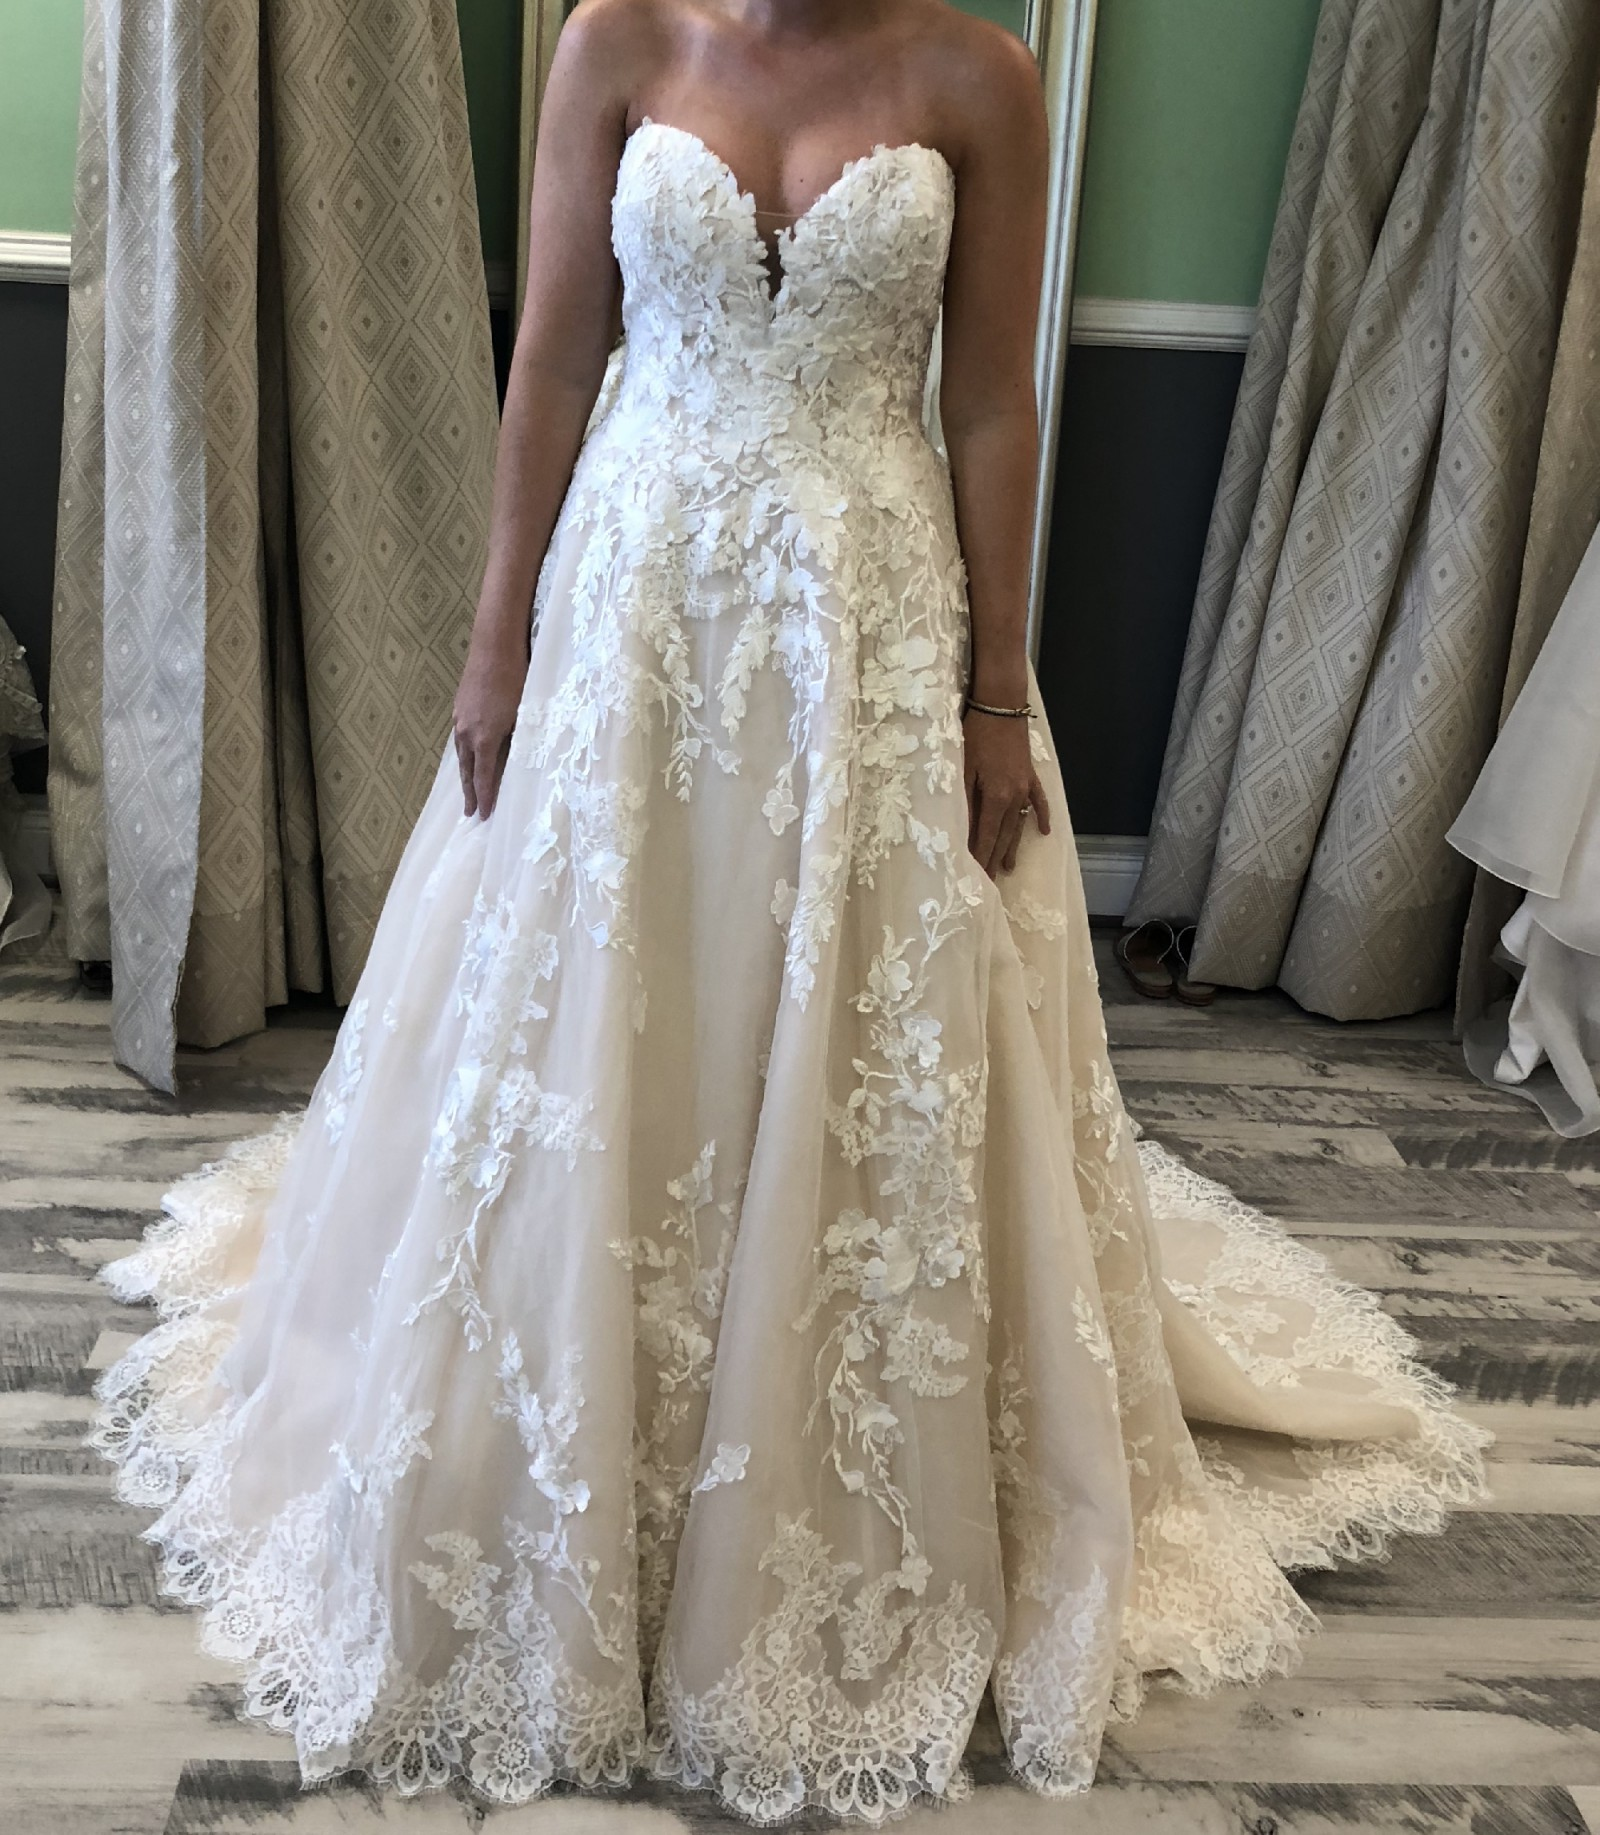 Off White Wedding Gown Meaning: Pronovias Elcira 2019 New Wedding Dress On Sale 32% Off